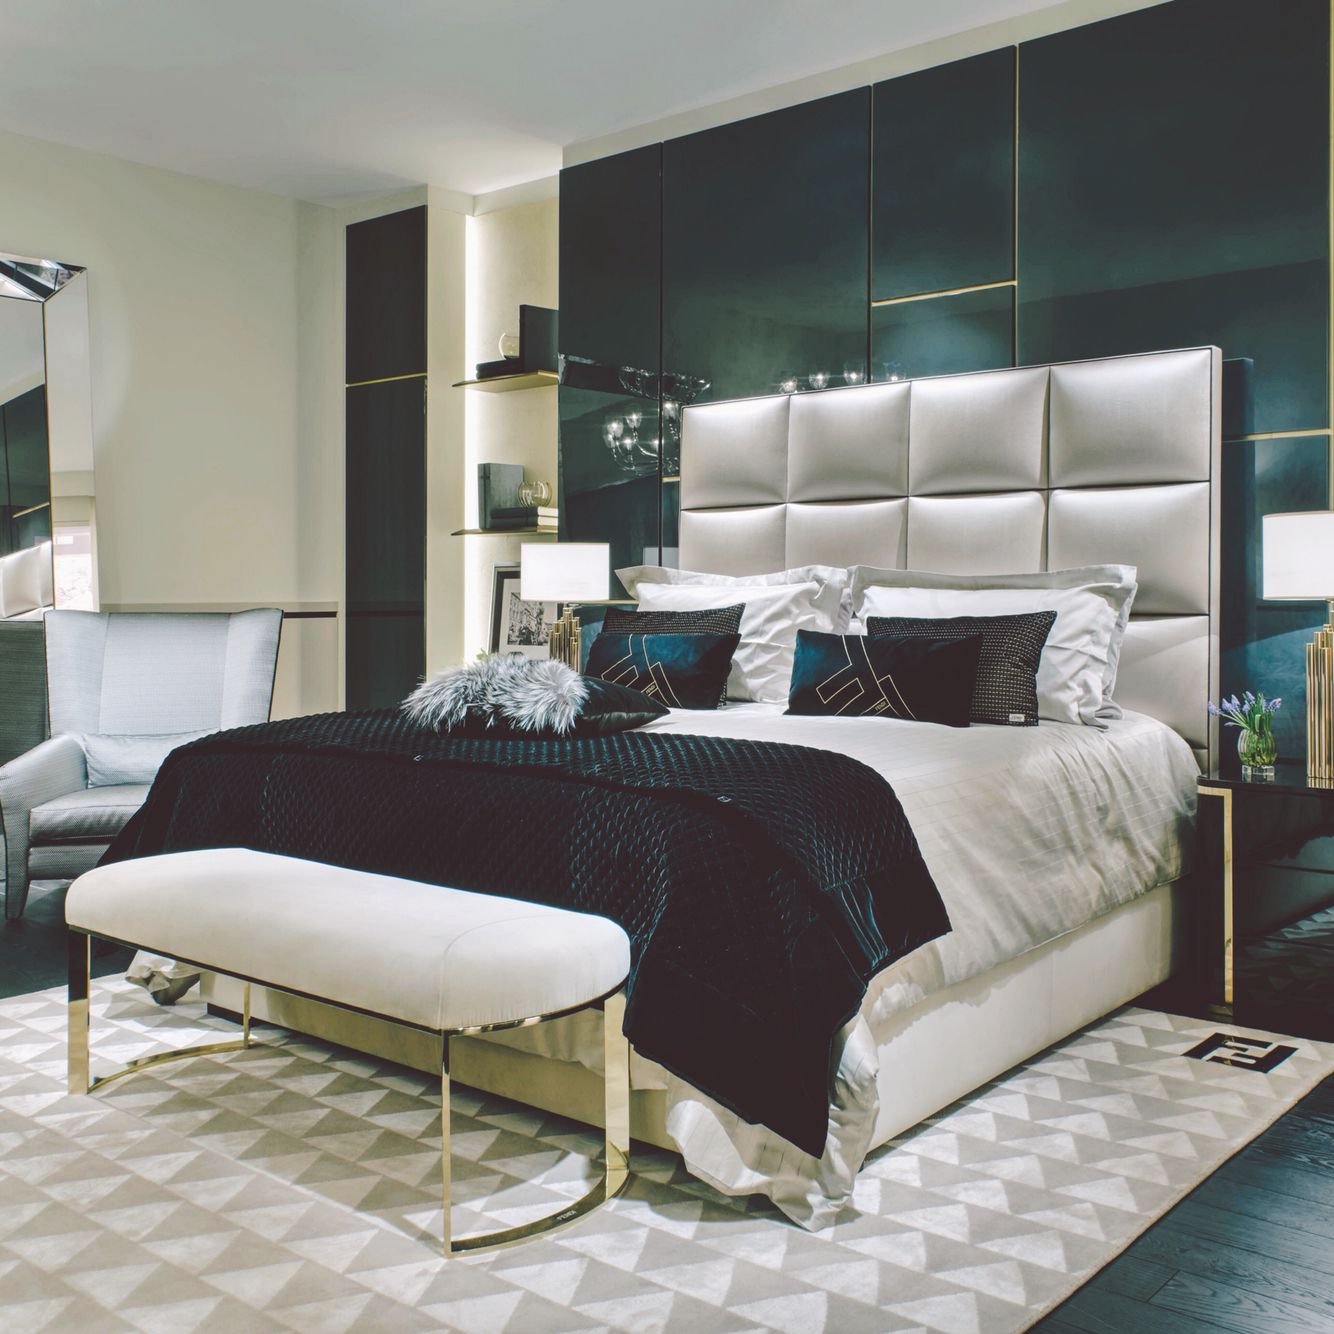 Pin By Glamfashionluxe On D E C O R Apartment Furniture Luxurious Bedrooms Home Furniture